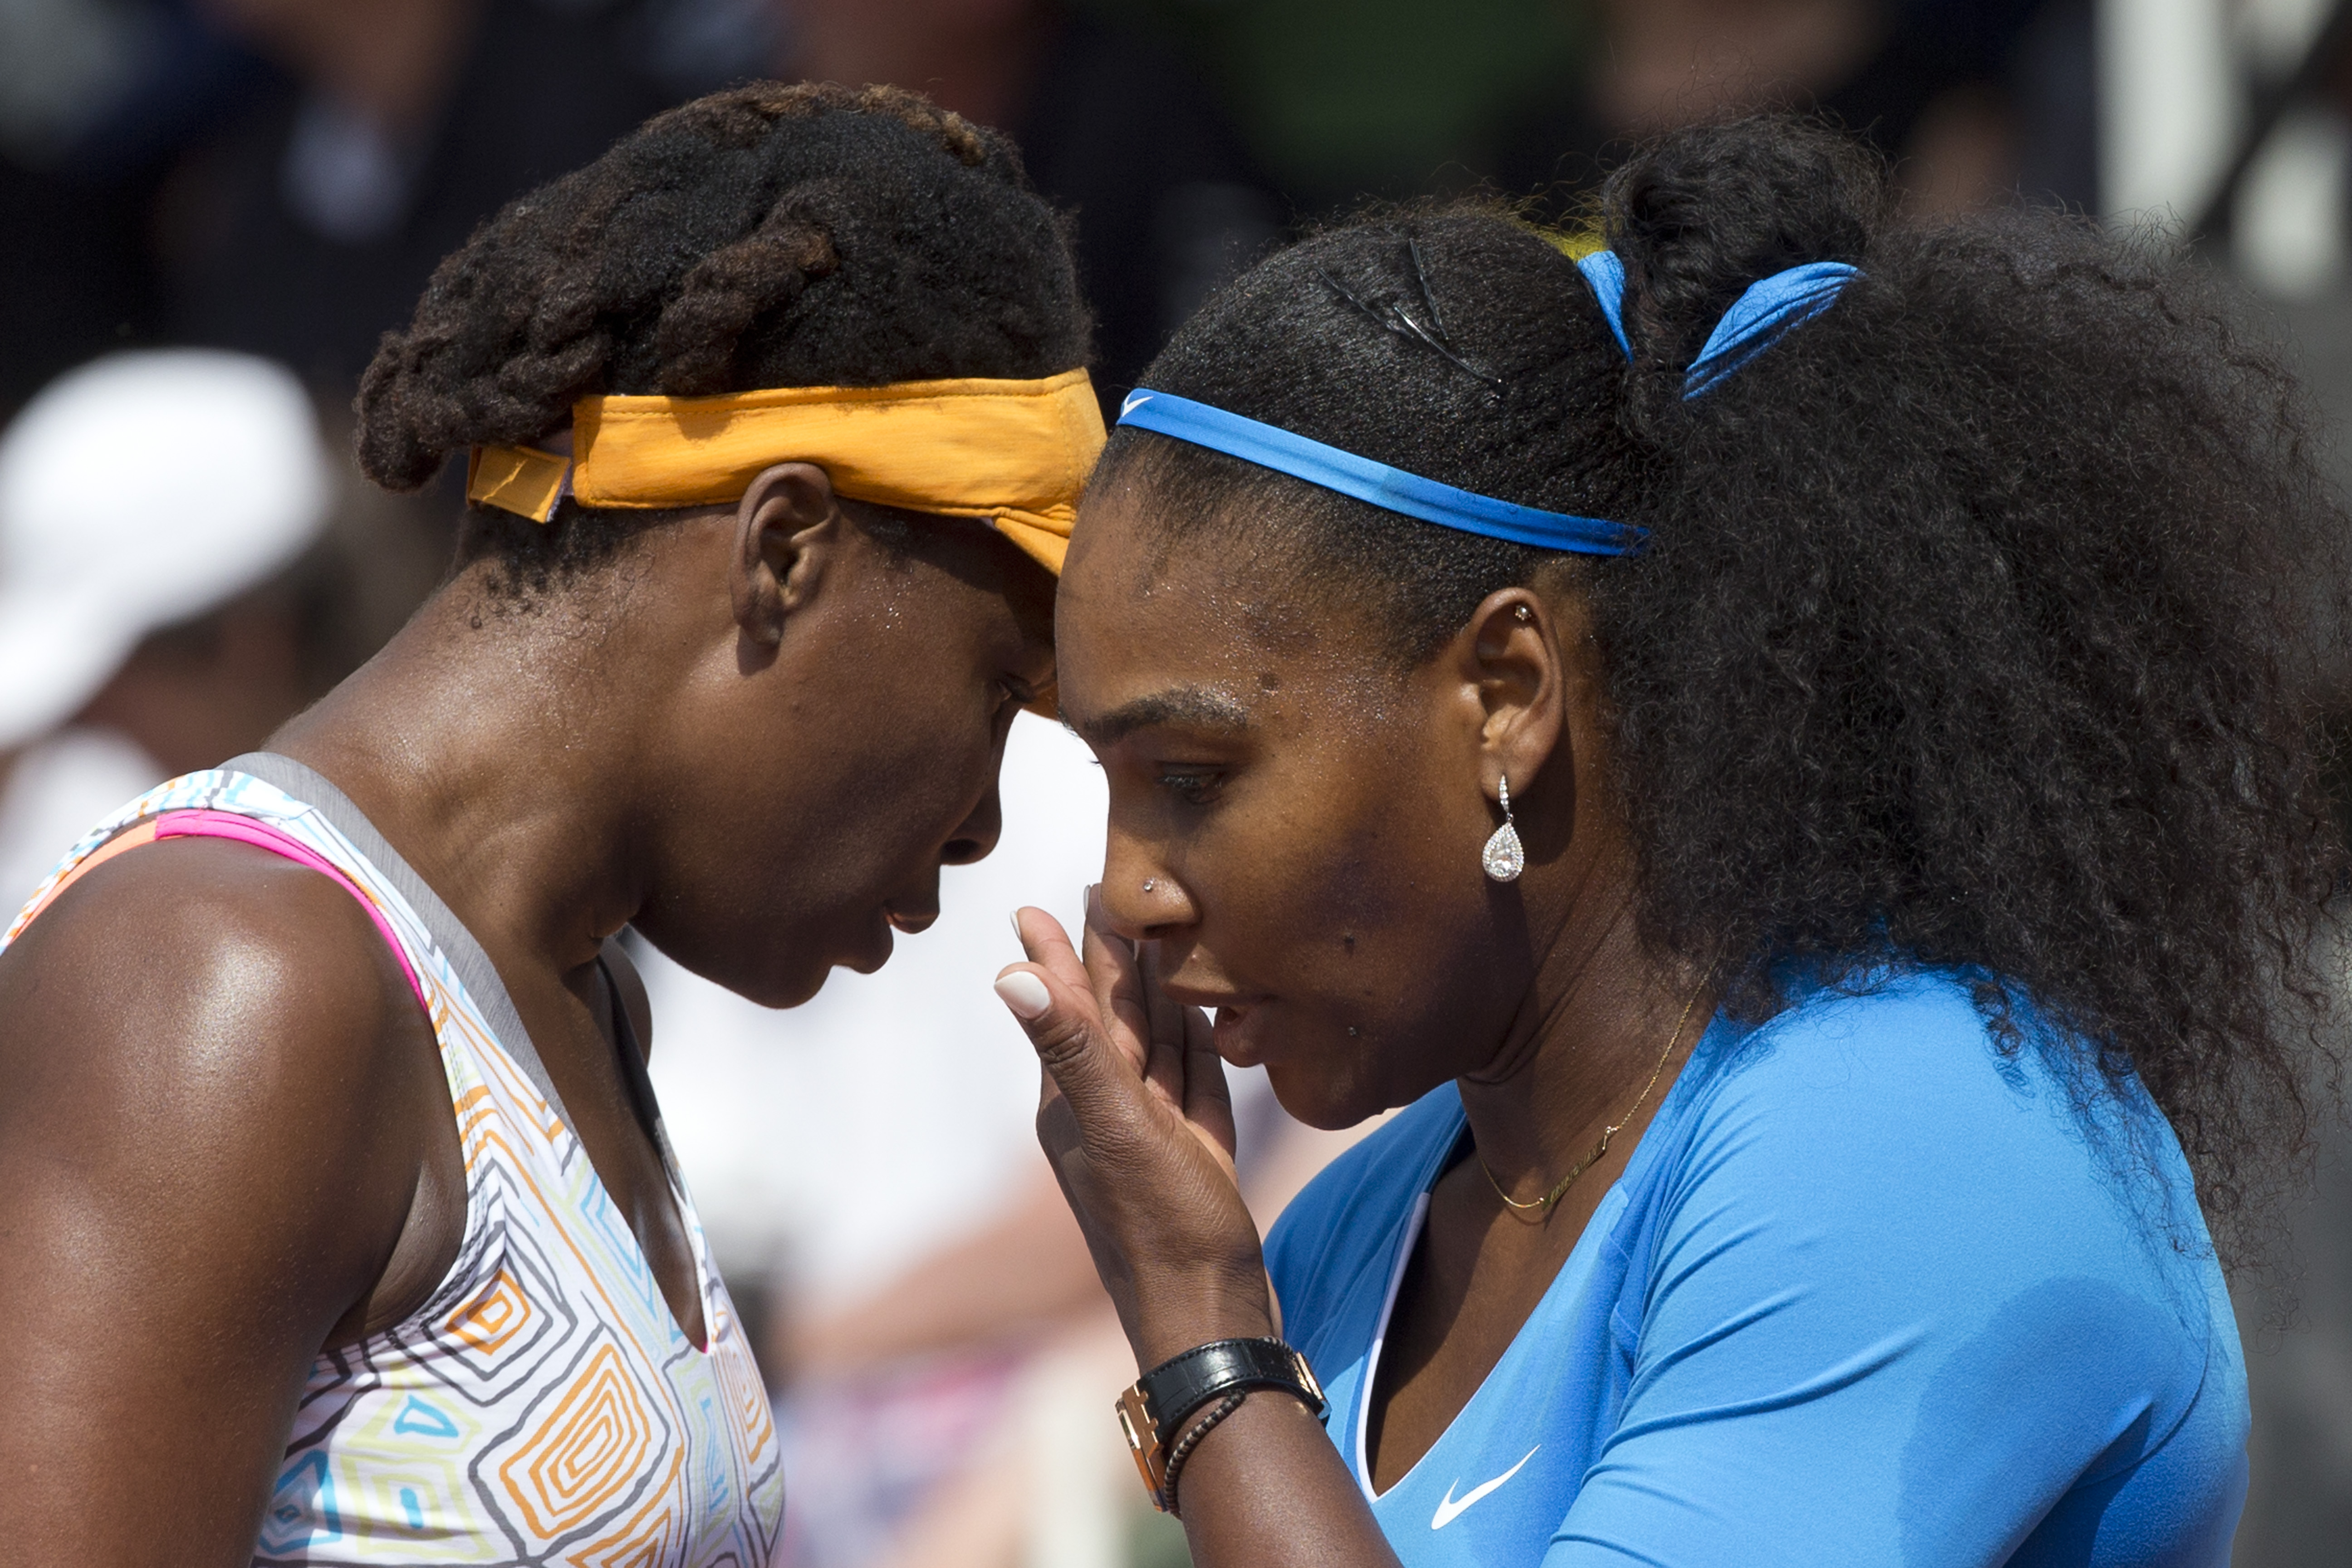 Venus, left, and Serena Williams of the U.S. talk tactics during their first round women doubles match of the French Open tennis tournament against Latvias Jelena Ostapenko and Kazakhstans Yulia Putintseva at the Roland Garros stadium in Paris, France, We